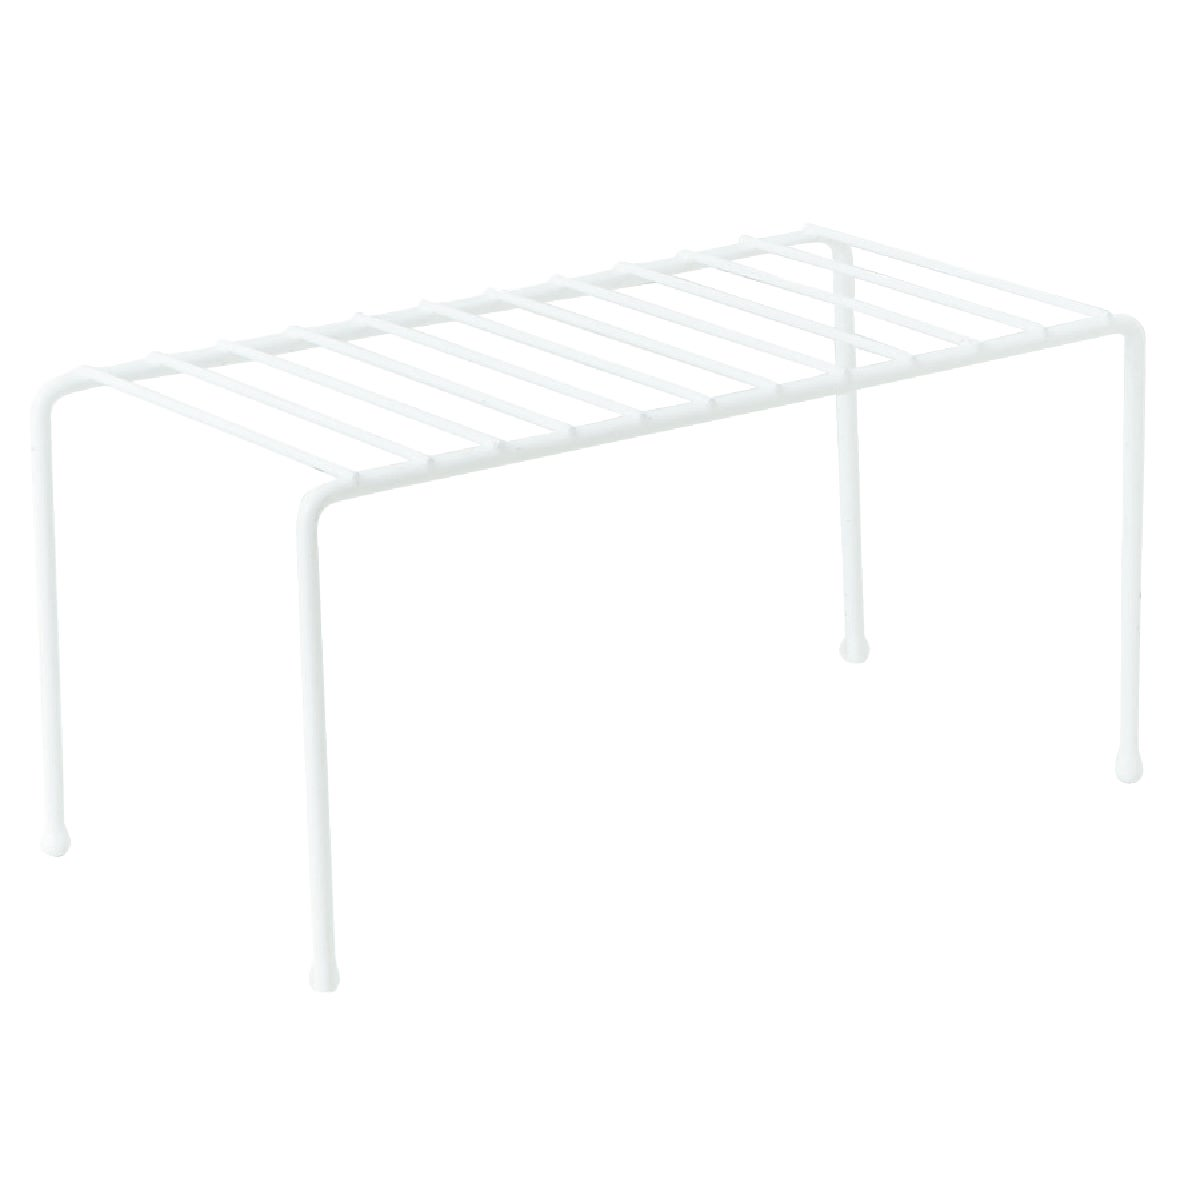 MEDIUM HELPER SHELF - 40700 by Panacea    Grayline